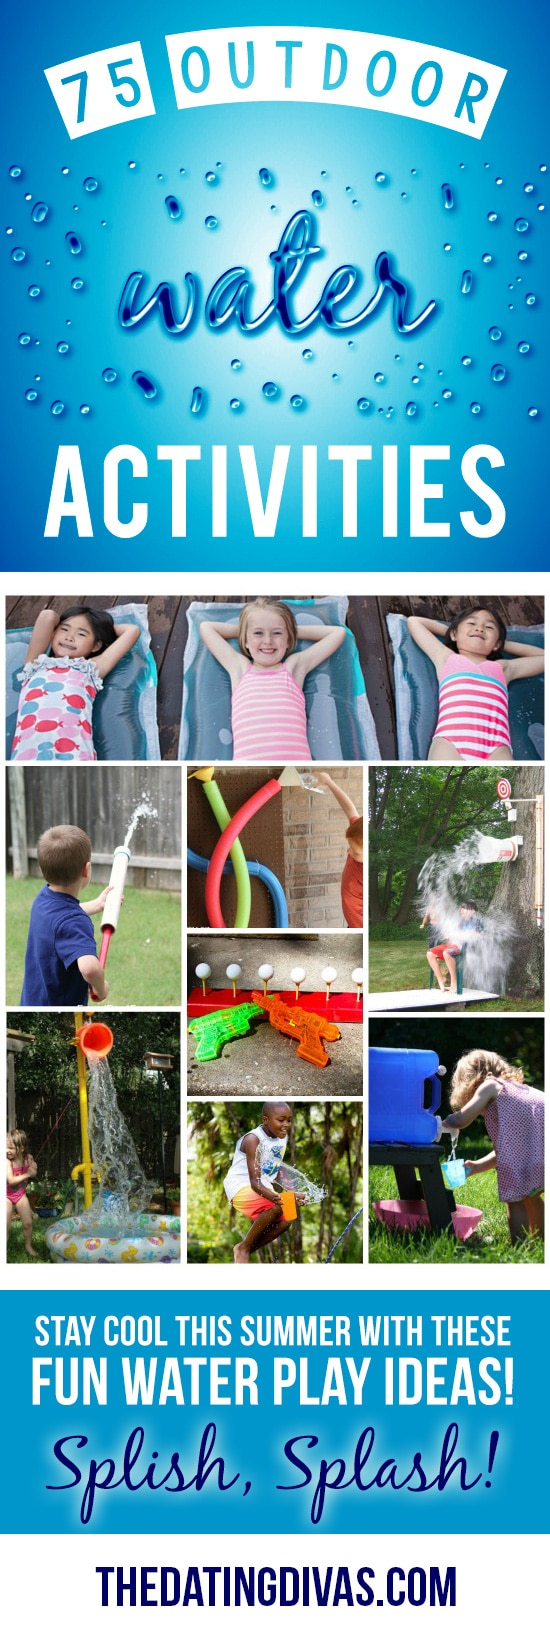 So many water activities for the whole family! Water games for kids, outdoor games for teenagers, water games for adults, DIY water toys and MORE! #TheDatingDivas #WaterActivities #WaterGamesForKids